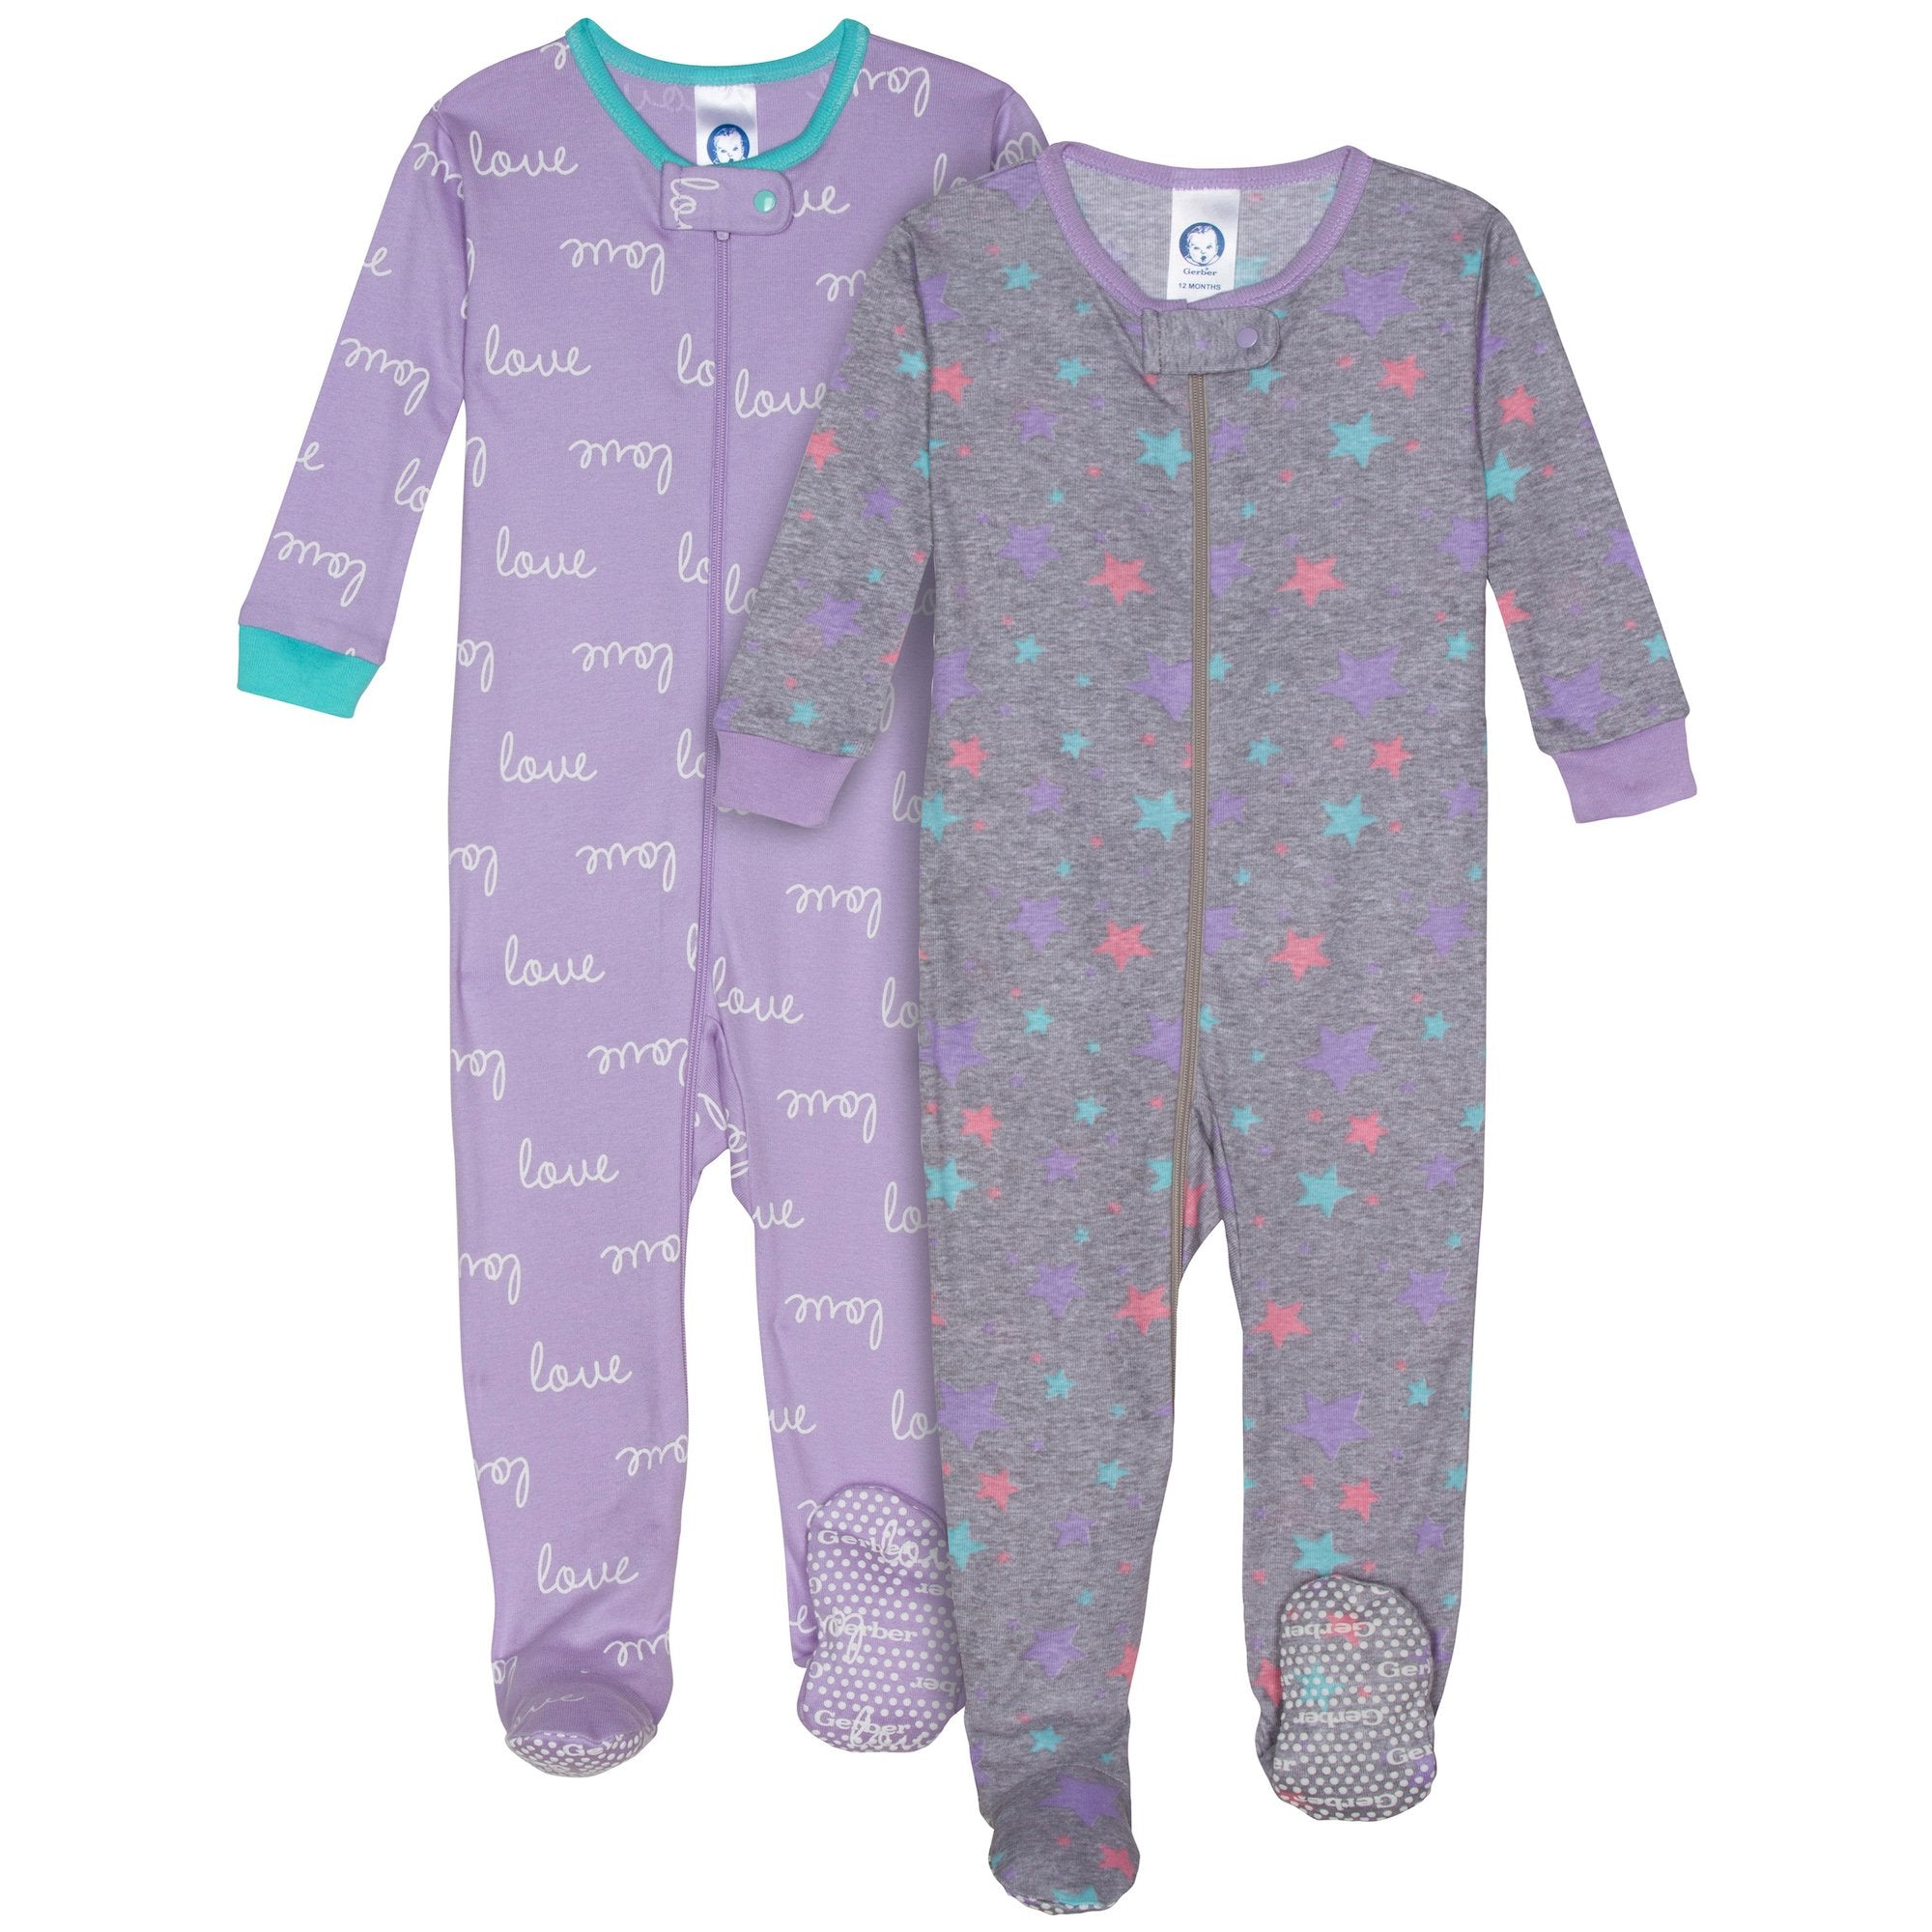 2-Pack Girls Organic Footed Star Pajamas